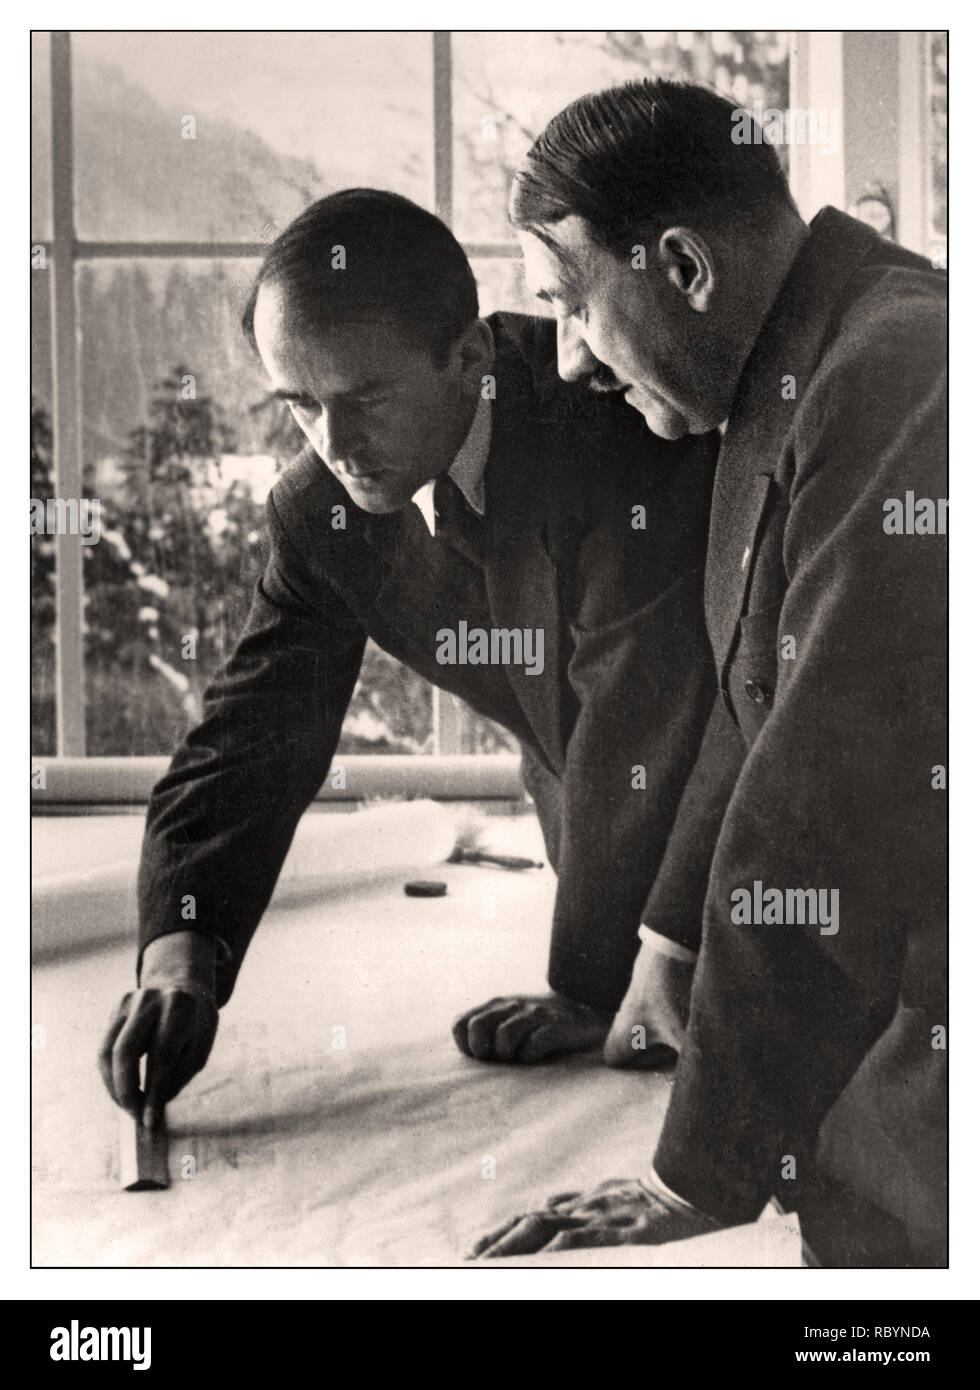 SPEER HITLER BERCHTESGADEN Archive pre-war image of Albert Speer presenting and dicussing an architectural drawing with German Nazi leader and Führer Adolf Hitler at Berchtesgaden, Bavaria, Germany, 1938 - Stock Image